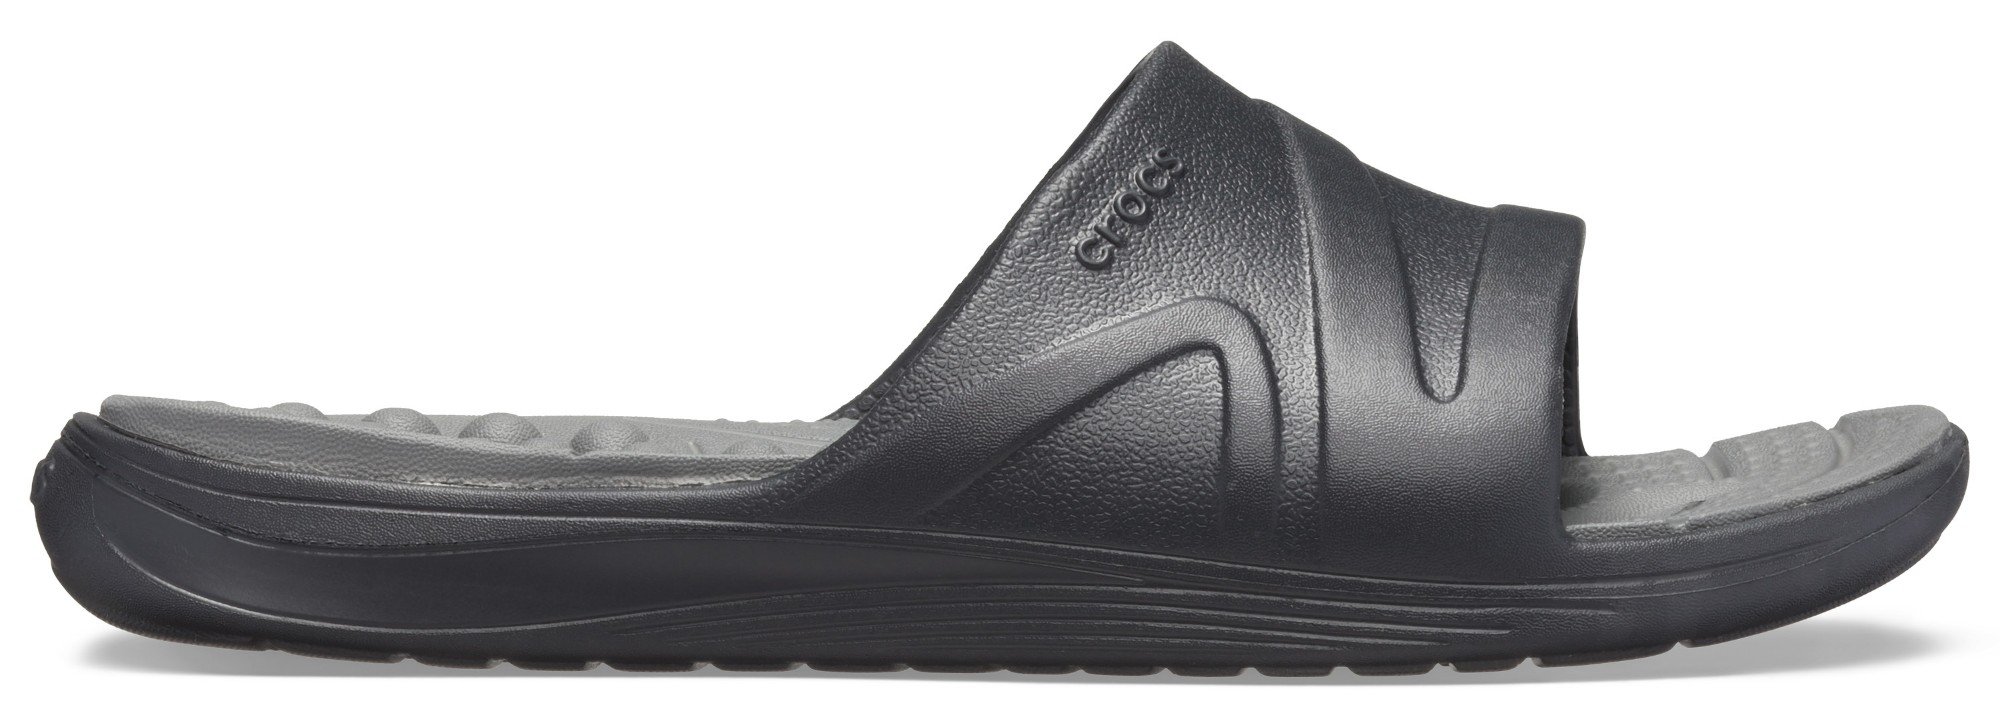 Crocs™ Reviva Slide Black/Slate Grey 38,5